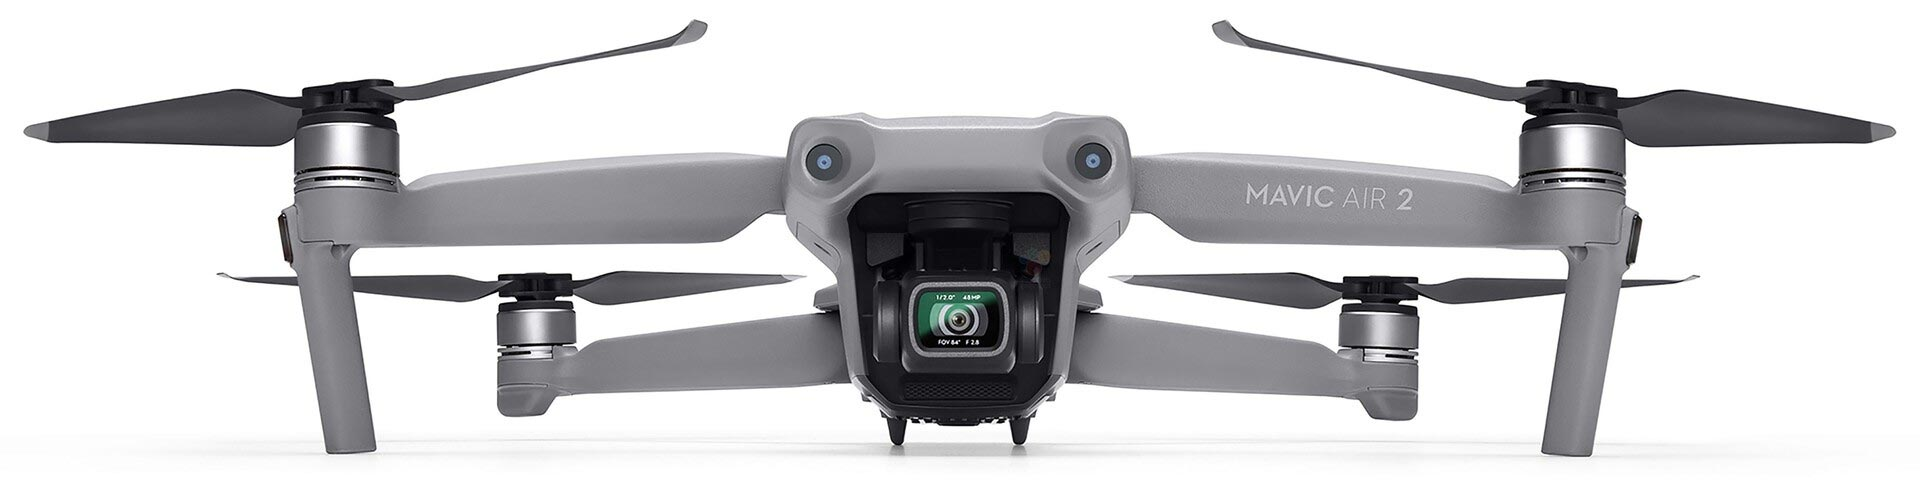 DJI Mavic Air 2: able to fly longer in a slower market 18